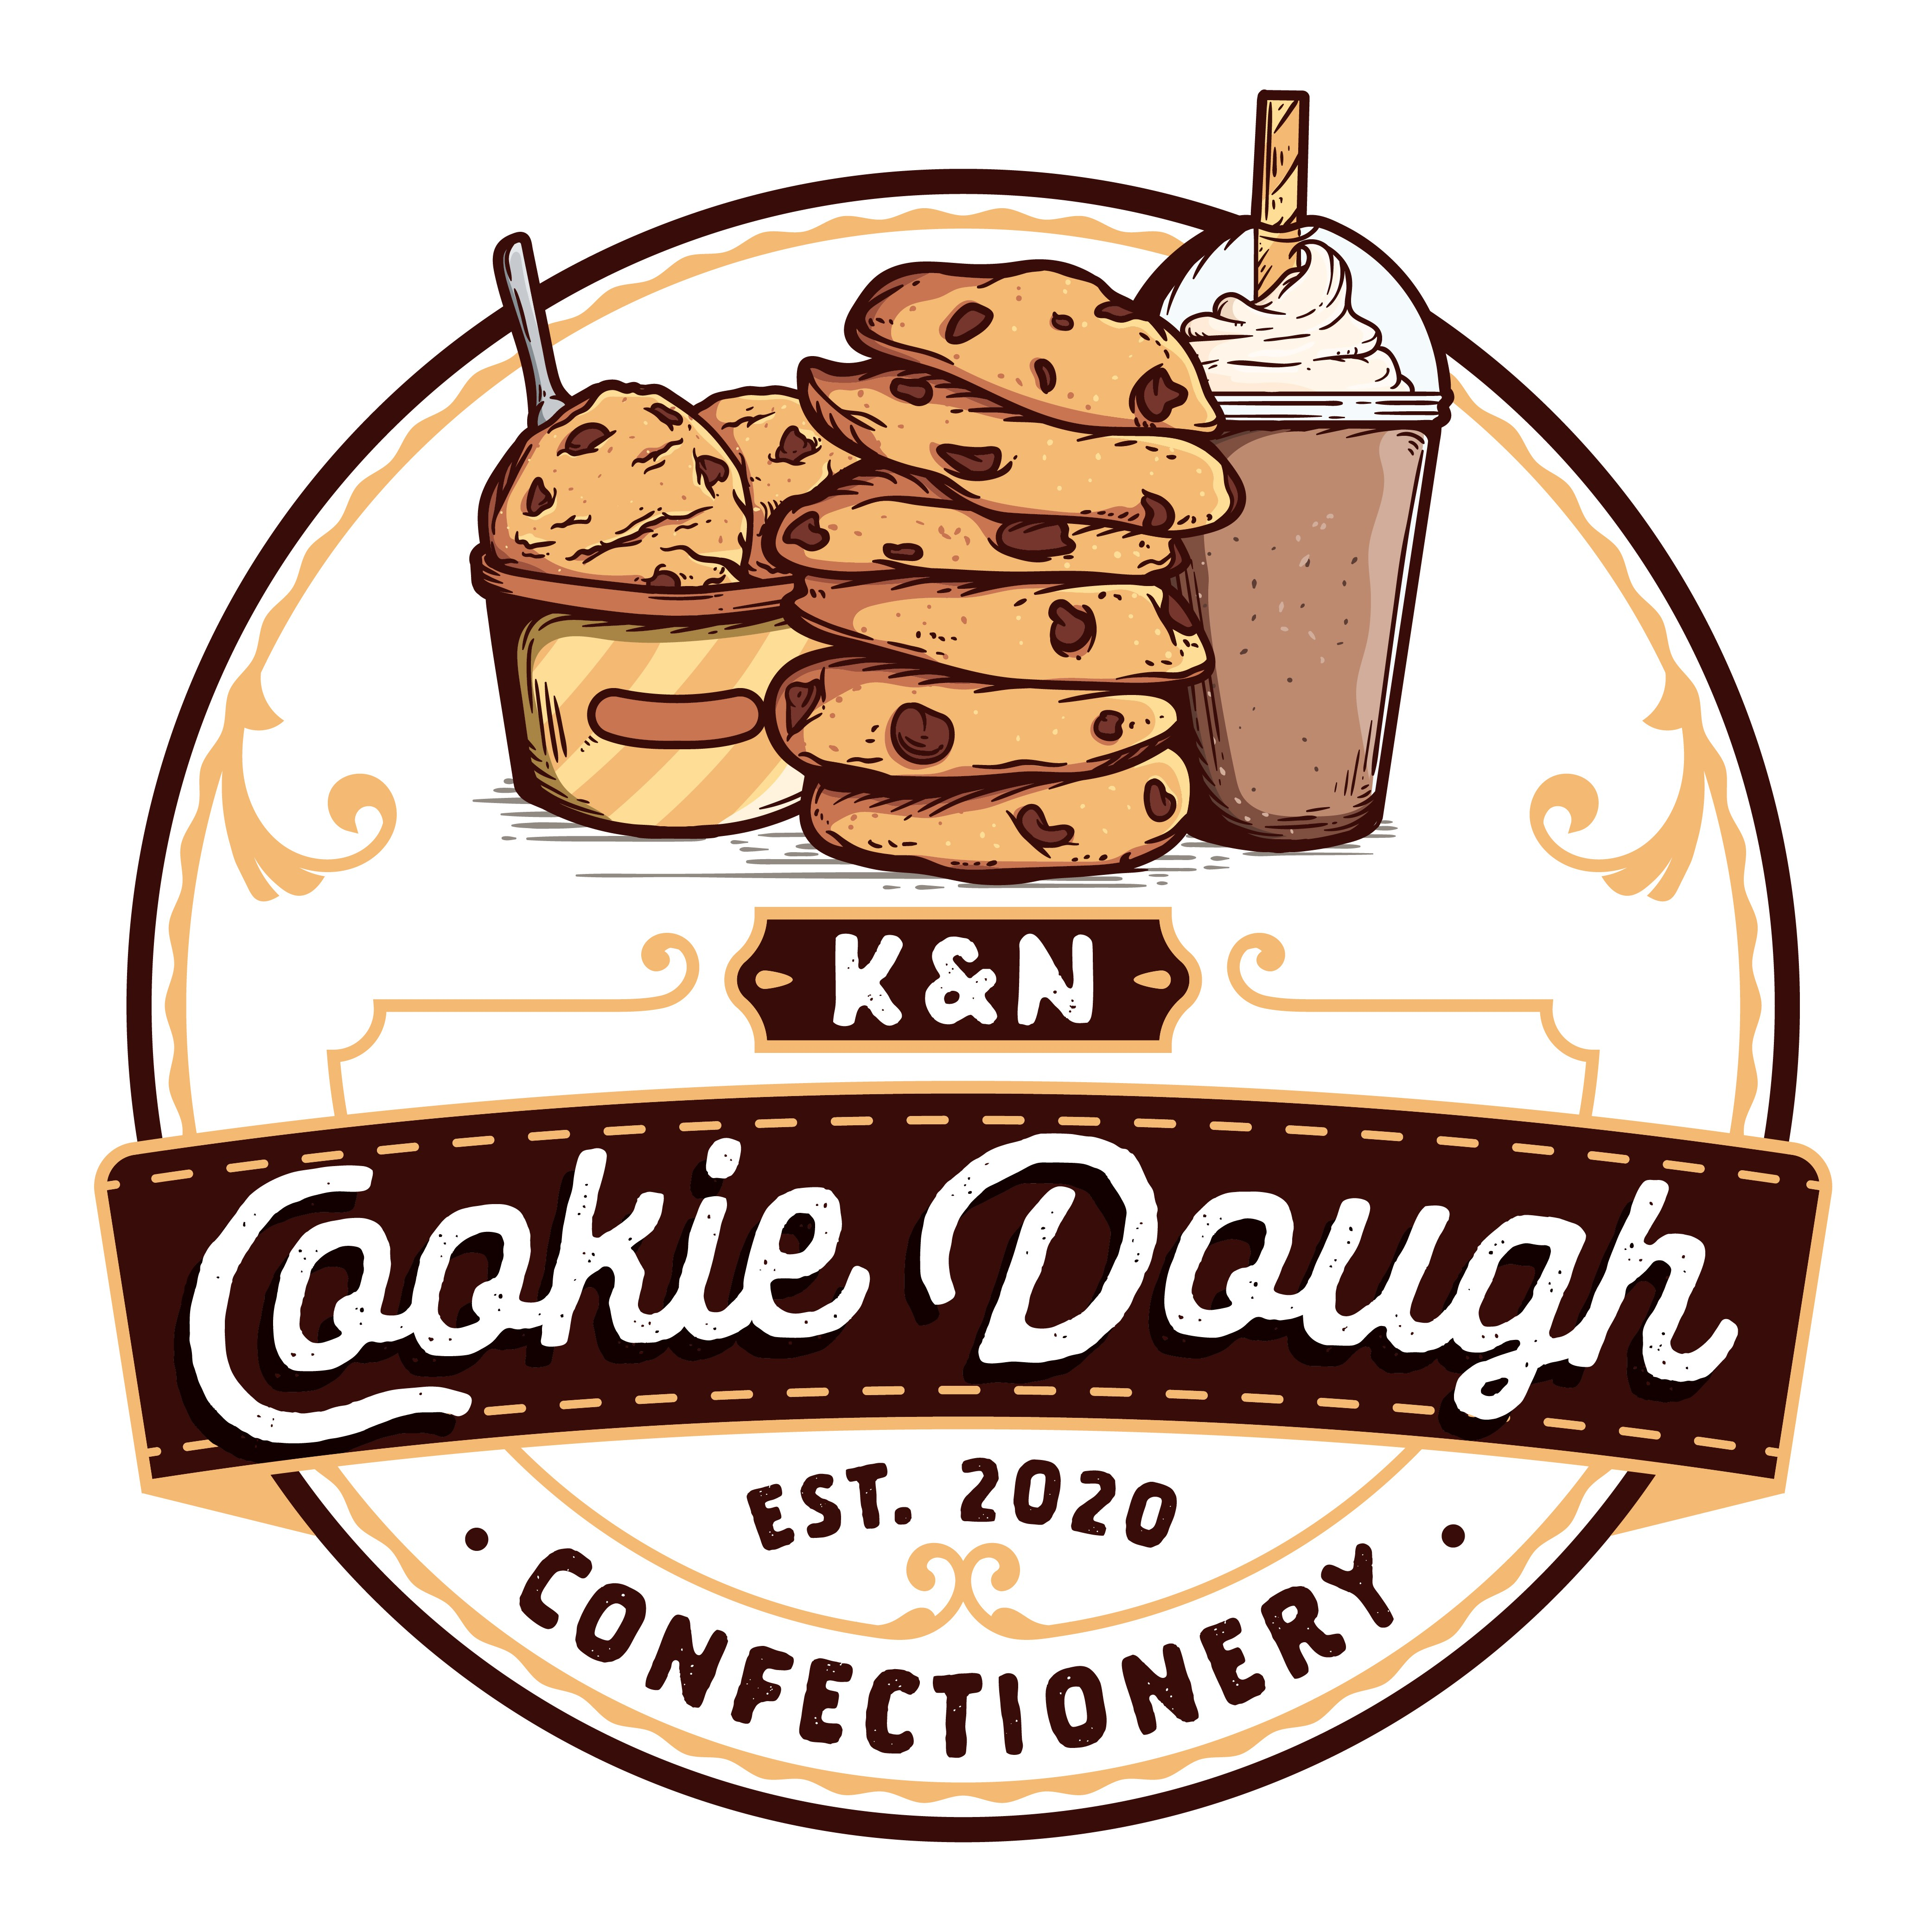 An eye catching cookie dough confectionery logo that appeals to all ages!